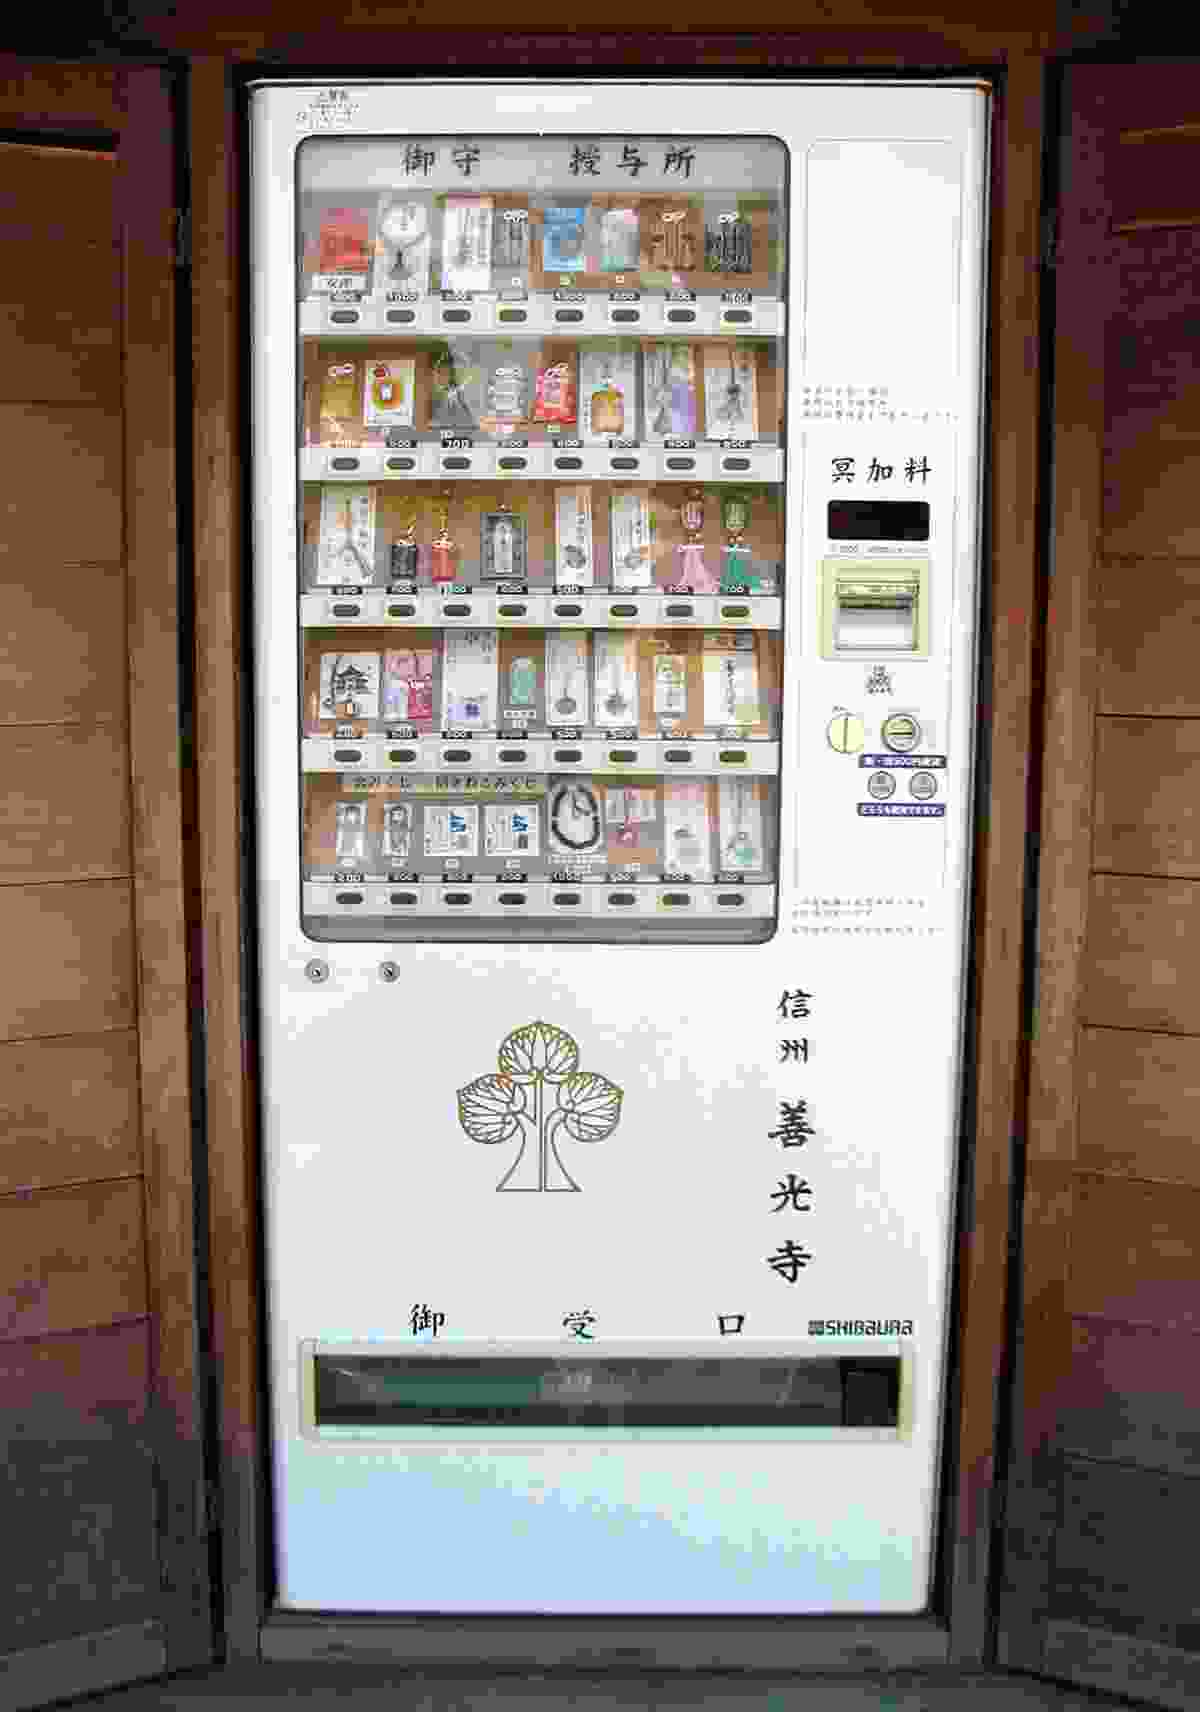 A machine vending Buddhist amulets near a temple (CreativeCommons: Chris 73)